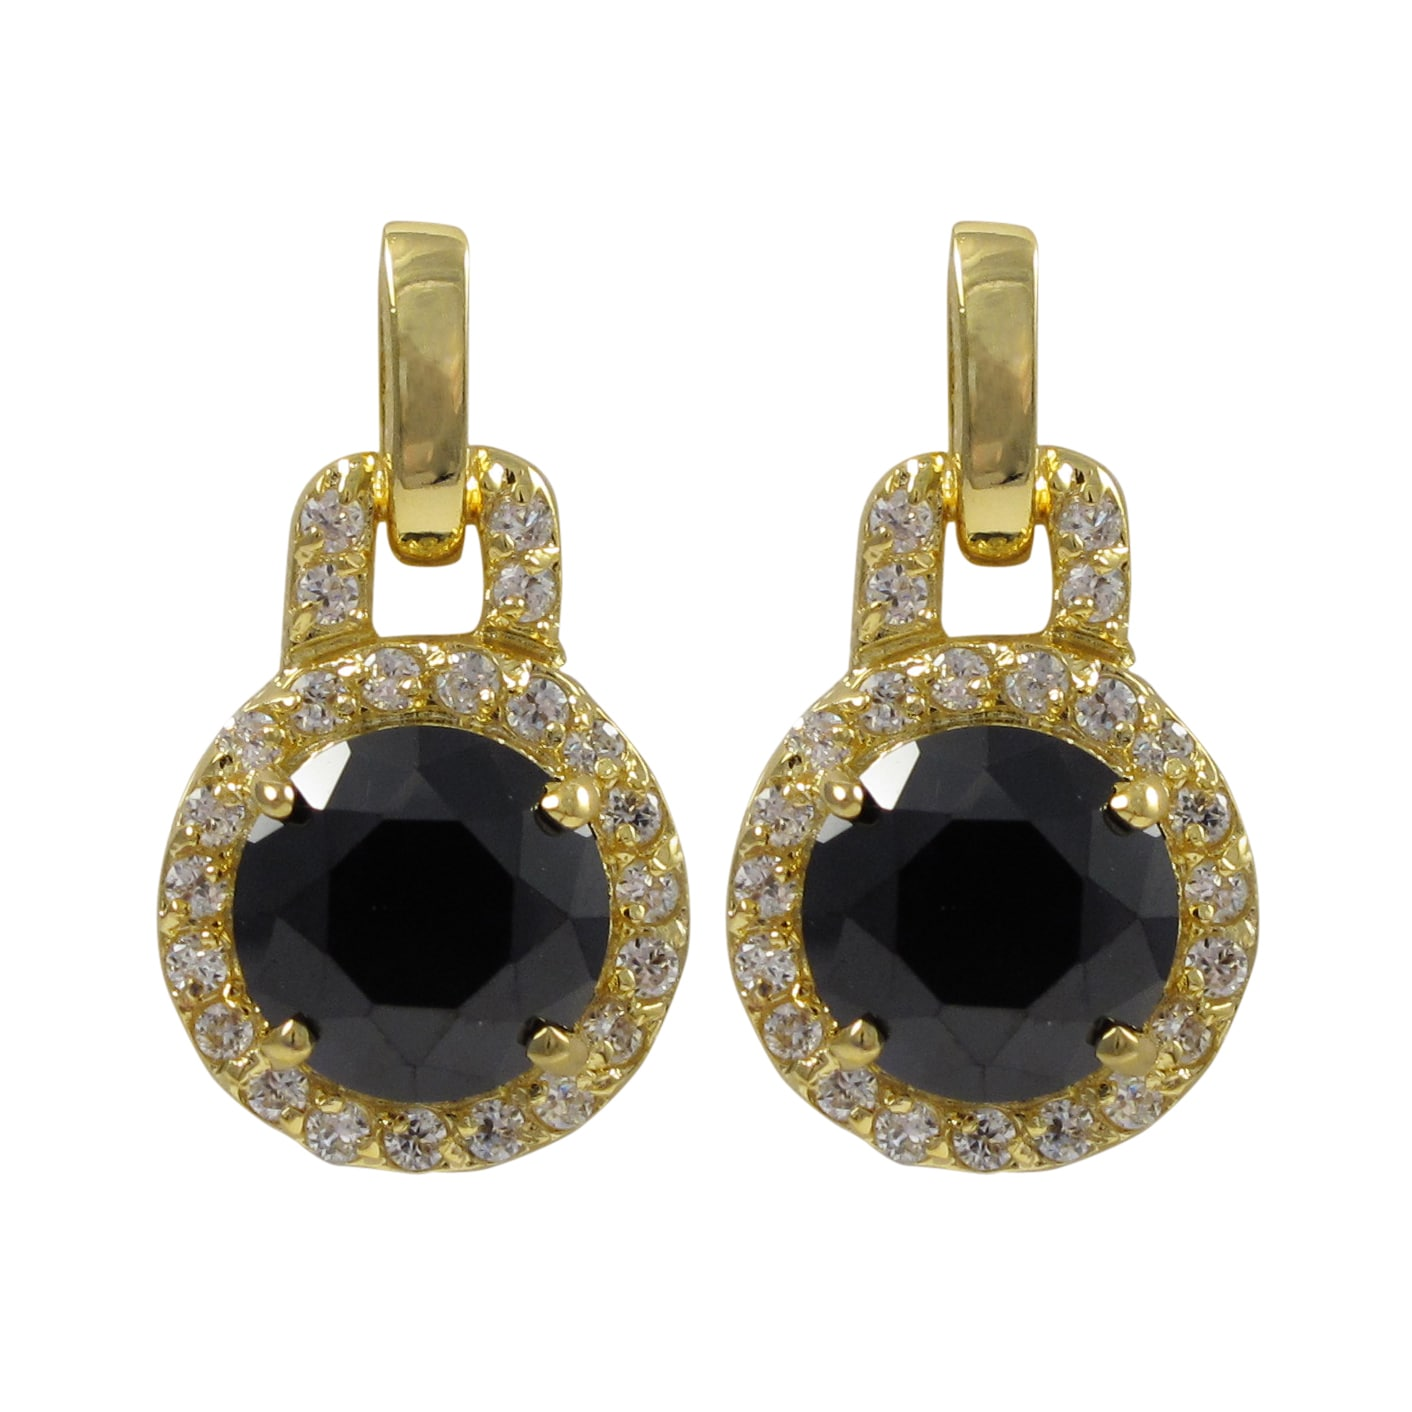 Buy Black Cubic Zirconia Earrings line at Overstock